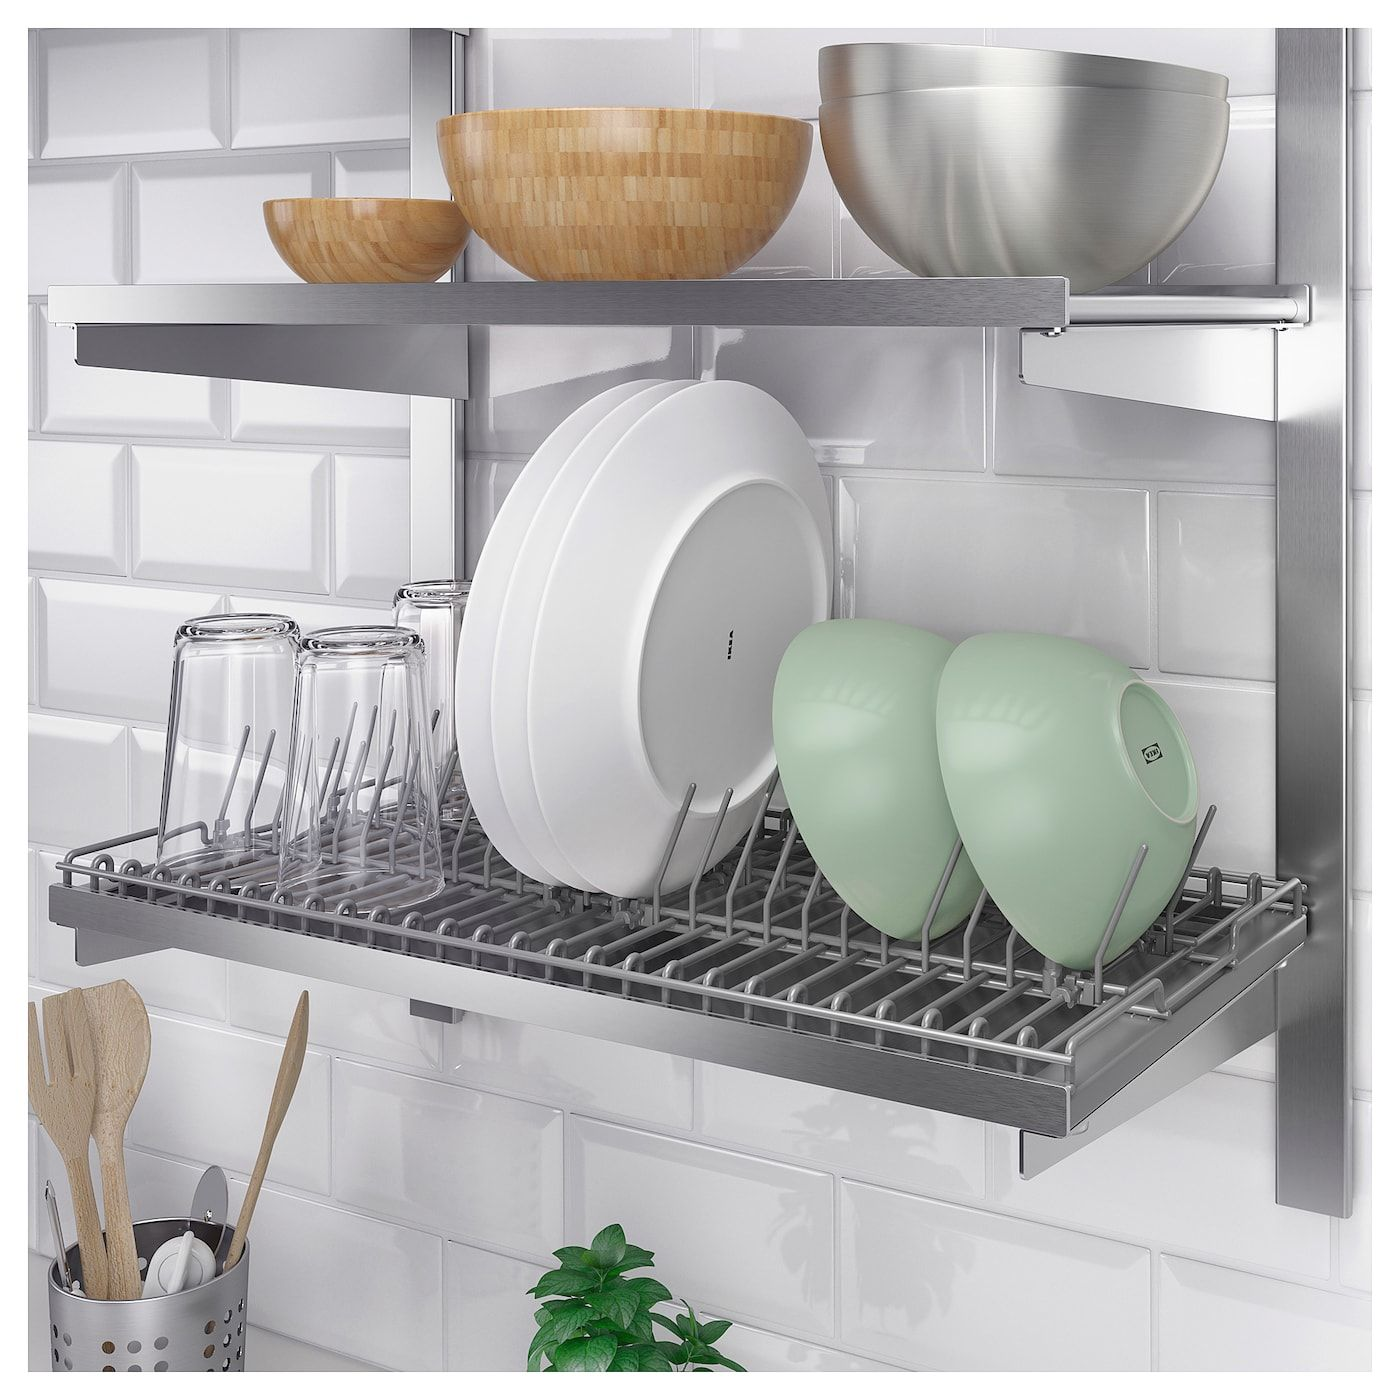 Ikea Kungsfors Dish Drainer Dish Drainers Home Decor Kitchen